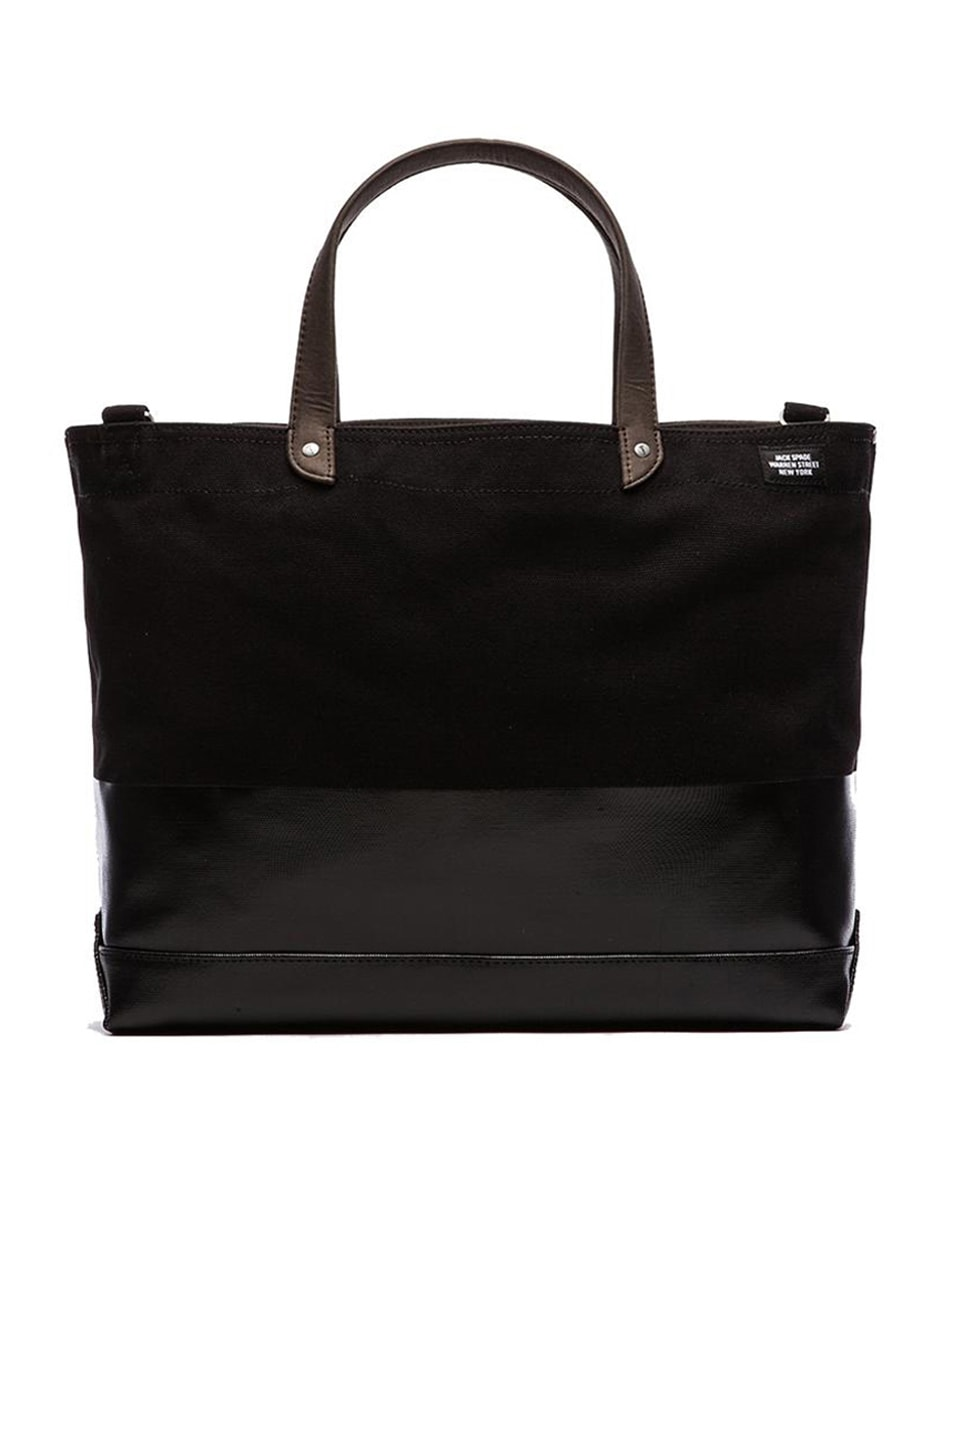 Jack Spade Dipped Coal Bag in Black/Black